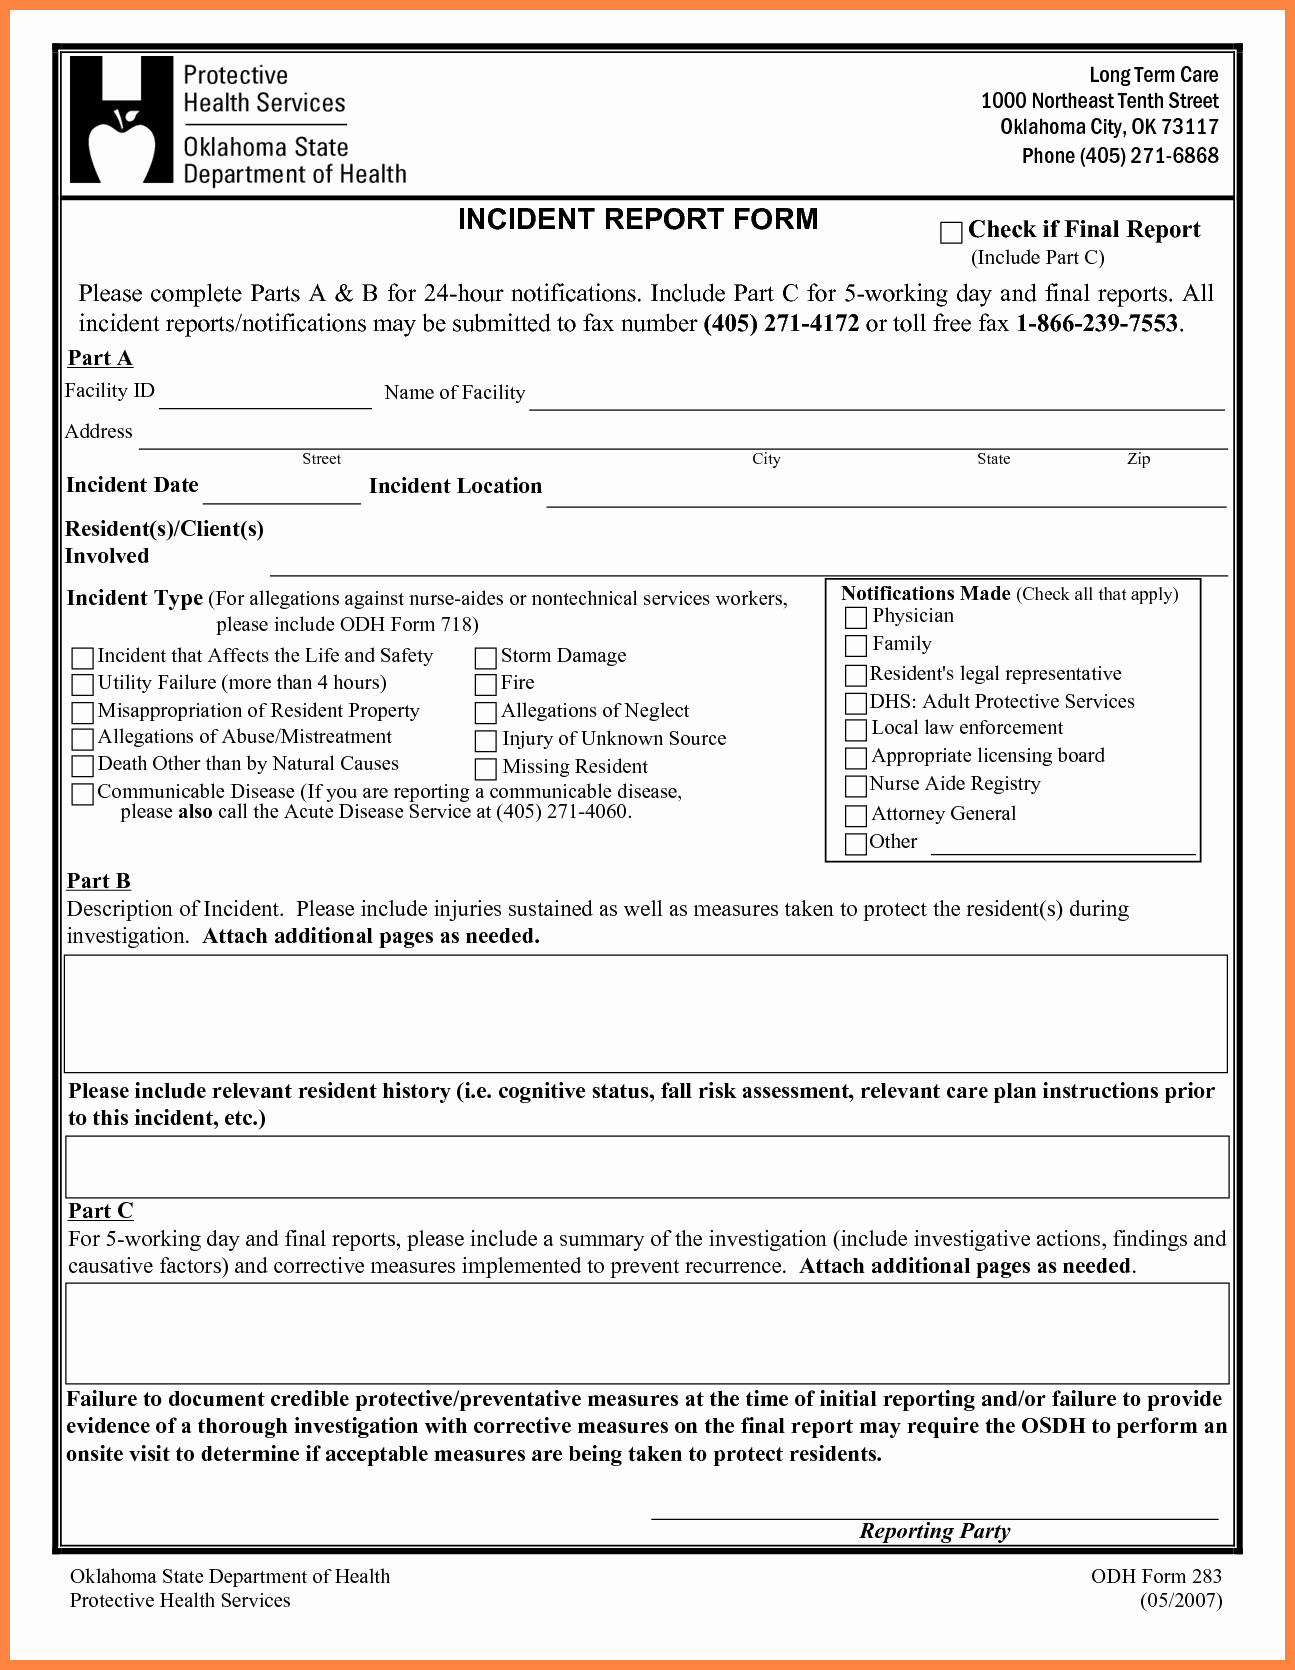 Security Incident Report Template Word Fresh 4 Security Incident Report Template Word